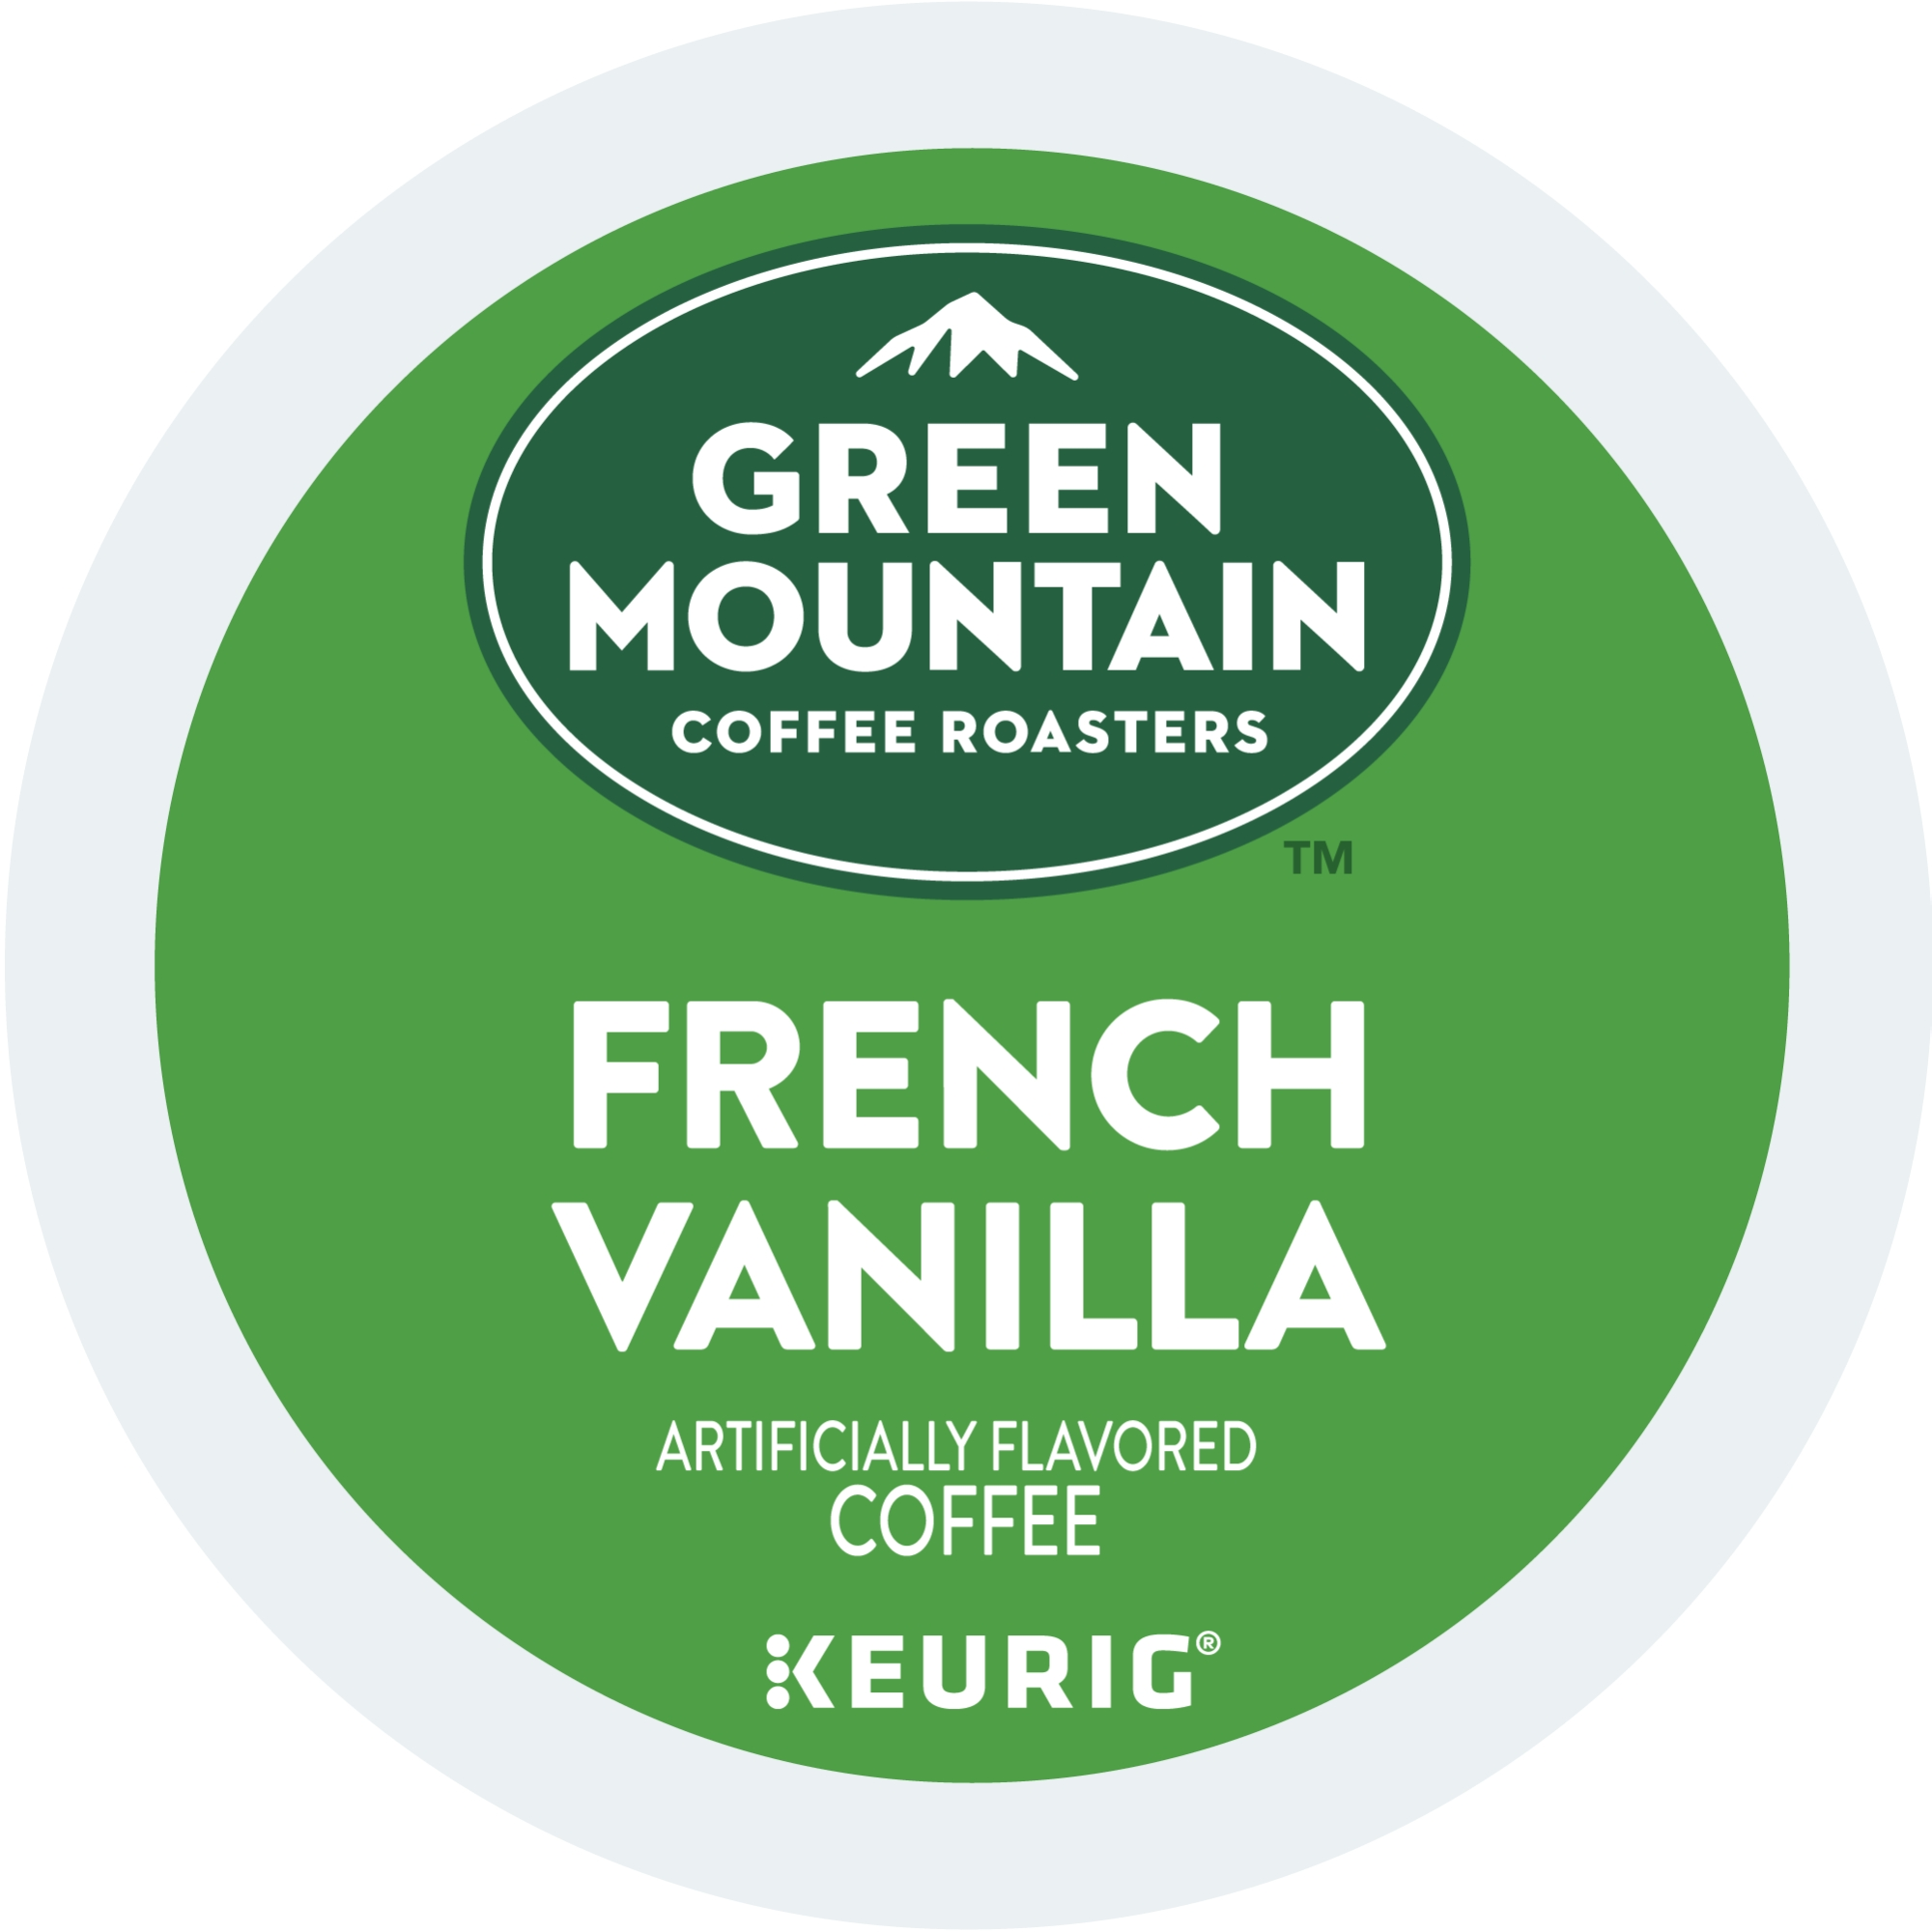 Green Mountain Coffee Roasters French Vanilla Keurig Single-Serve K-Cup pods, Light Roast Coffee, 18 Count